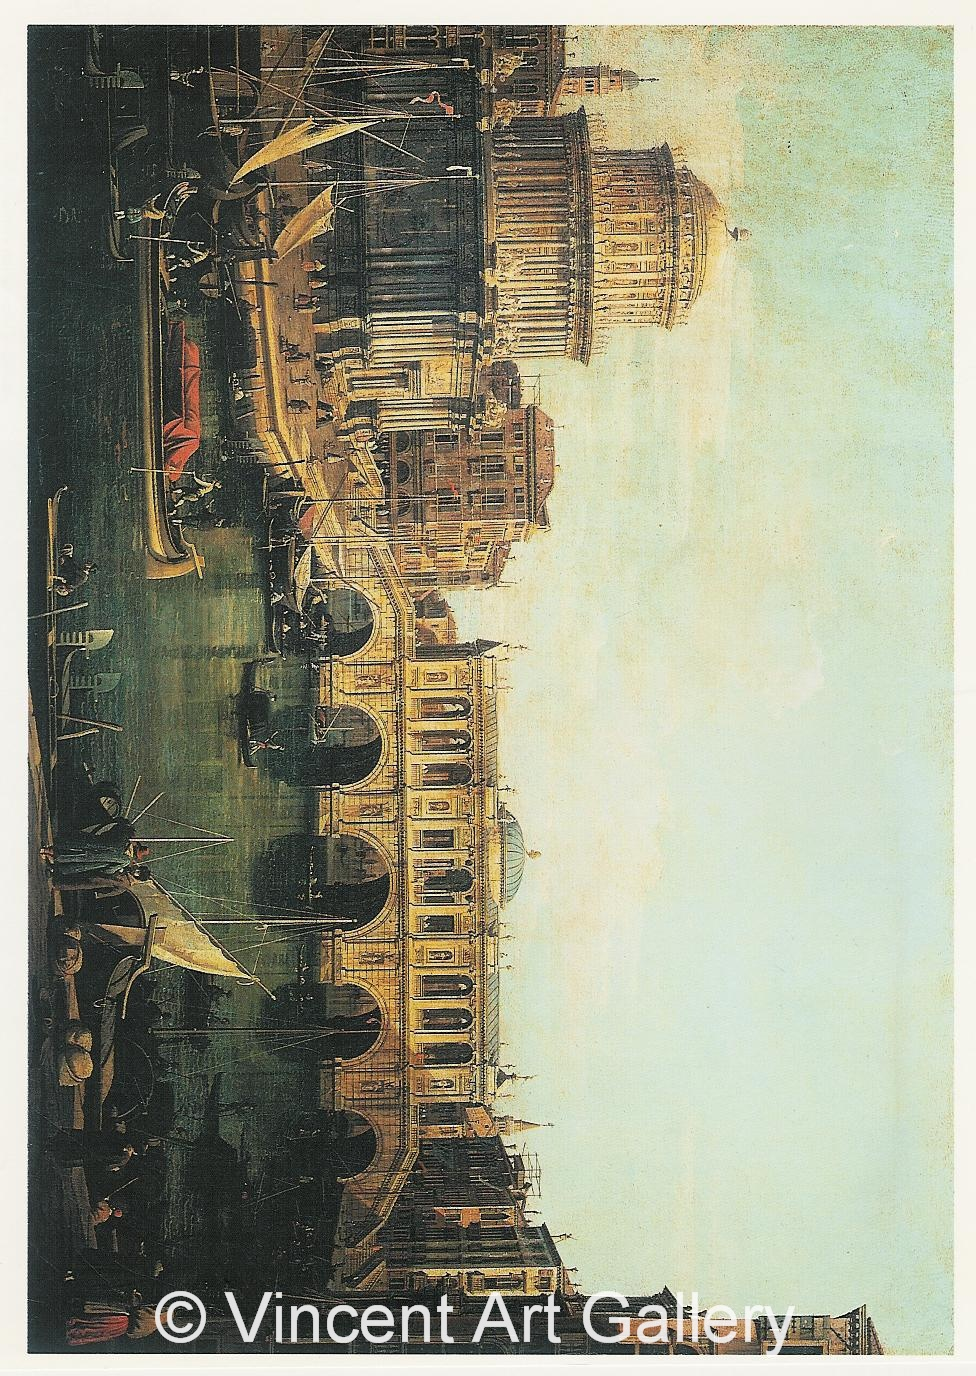 A1010, Canaletto, Capriccio of the Grand Canal with an Imaginary